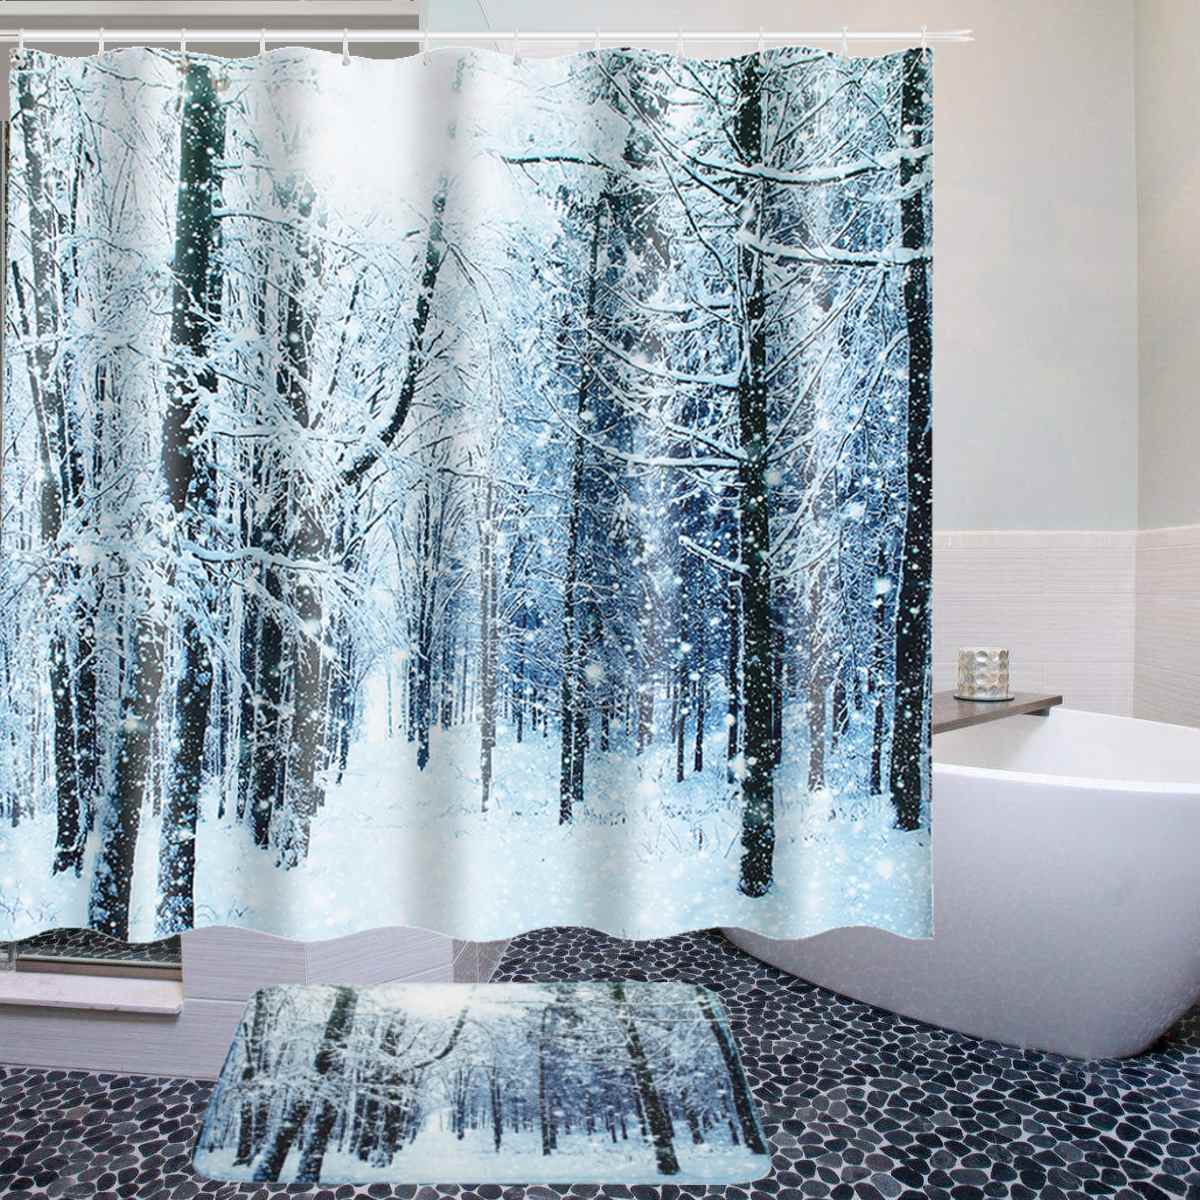 Us 5 38 26 Off Christmas Snowman Shower Curtain Anti Slip Waterproof Polyester Fabric Bath Curtain Bath Mat With 12 Hooks For Bathroom Curtains In